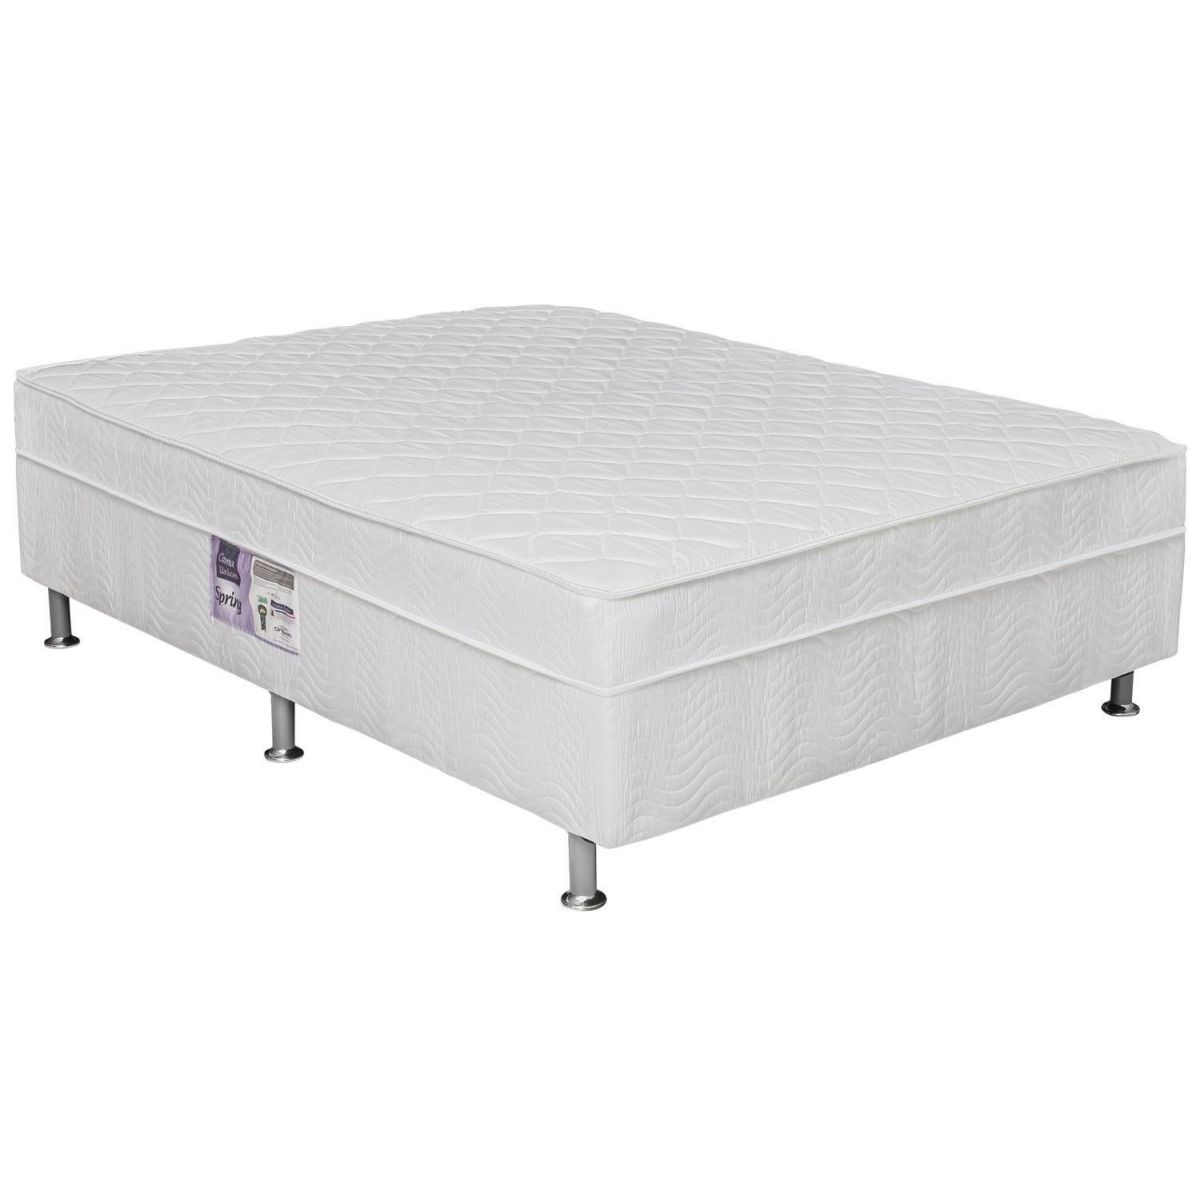 CAMA BOX QUEEN SIZE SIMPLES COM MOLA BONNEL